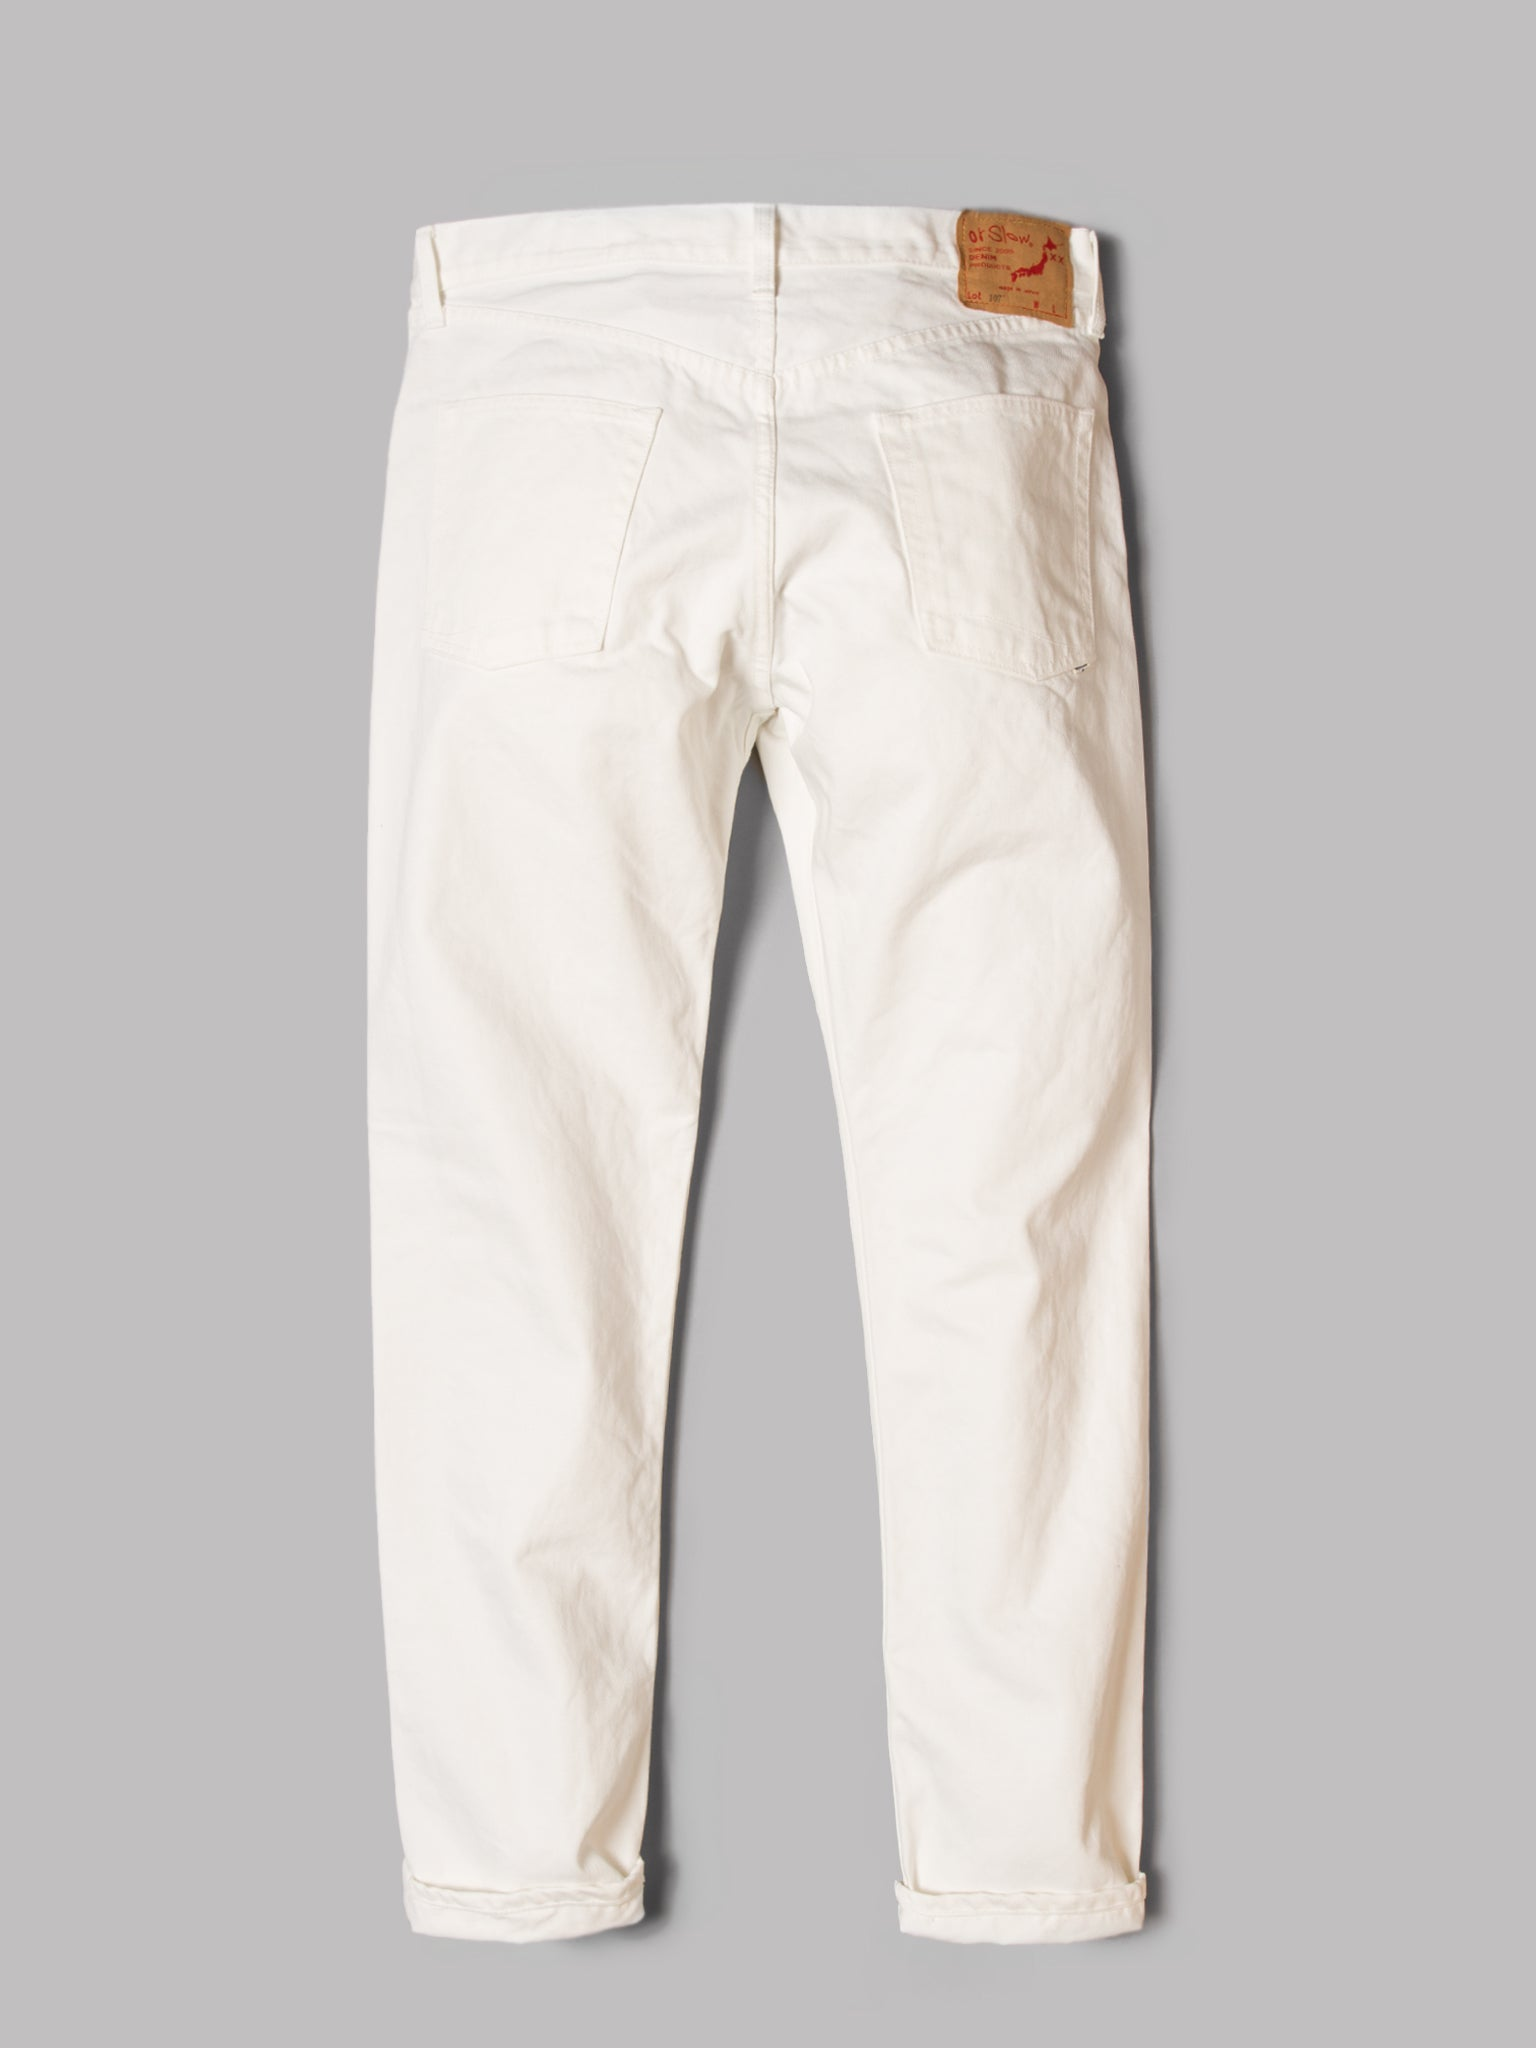 orSlow 107 Ivy Fit Jeans (White)